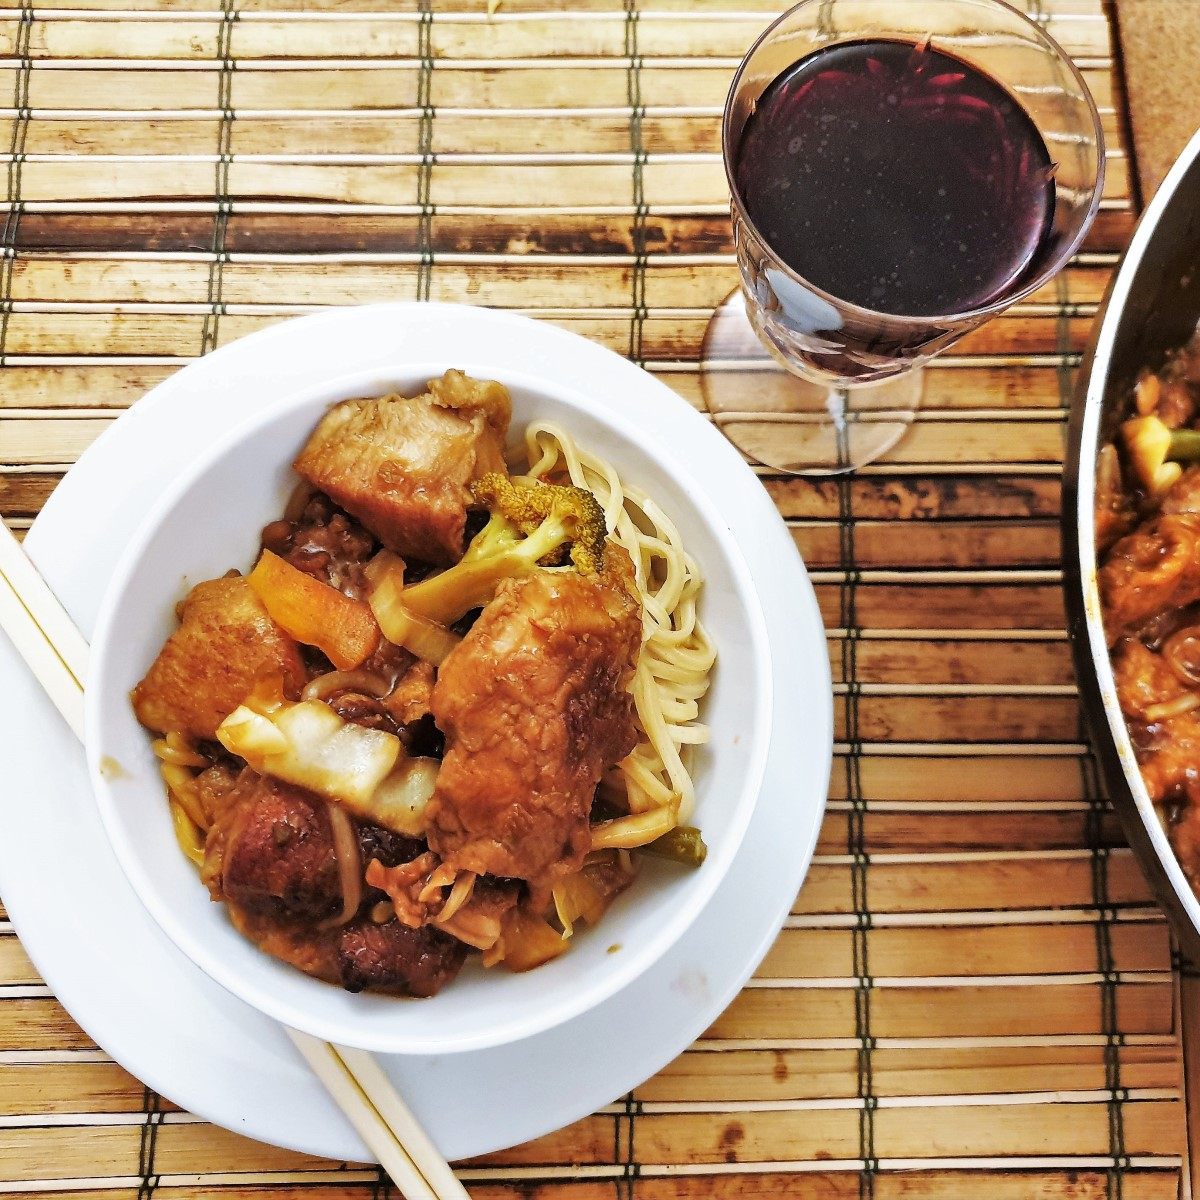 Overhead shot of a bowl of szechuan chicken next to a glass of red wine.